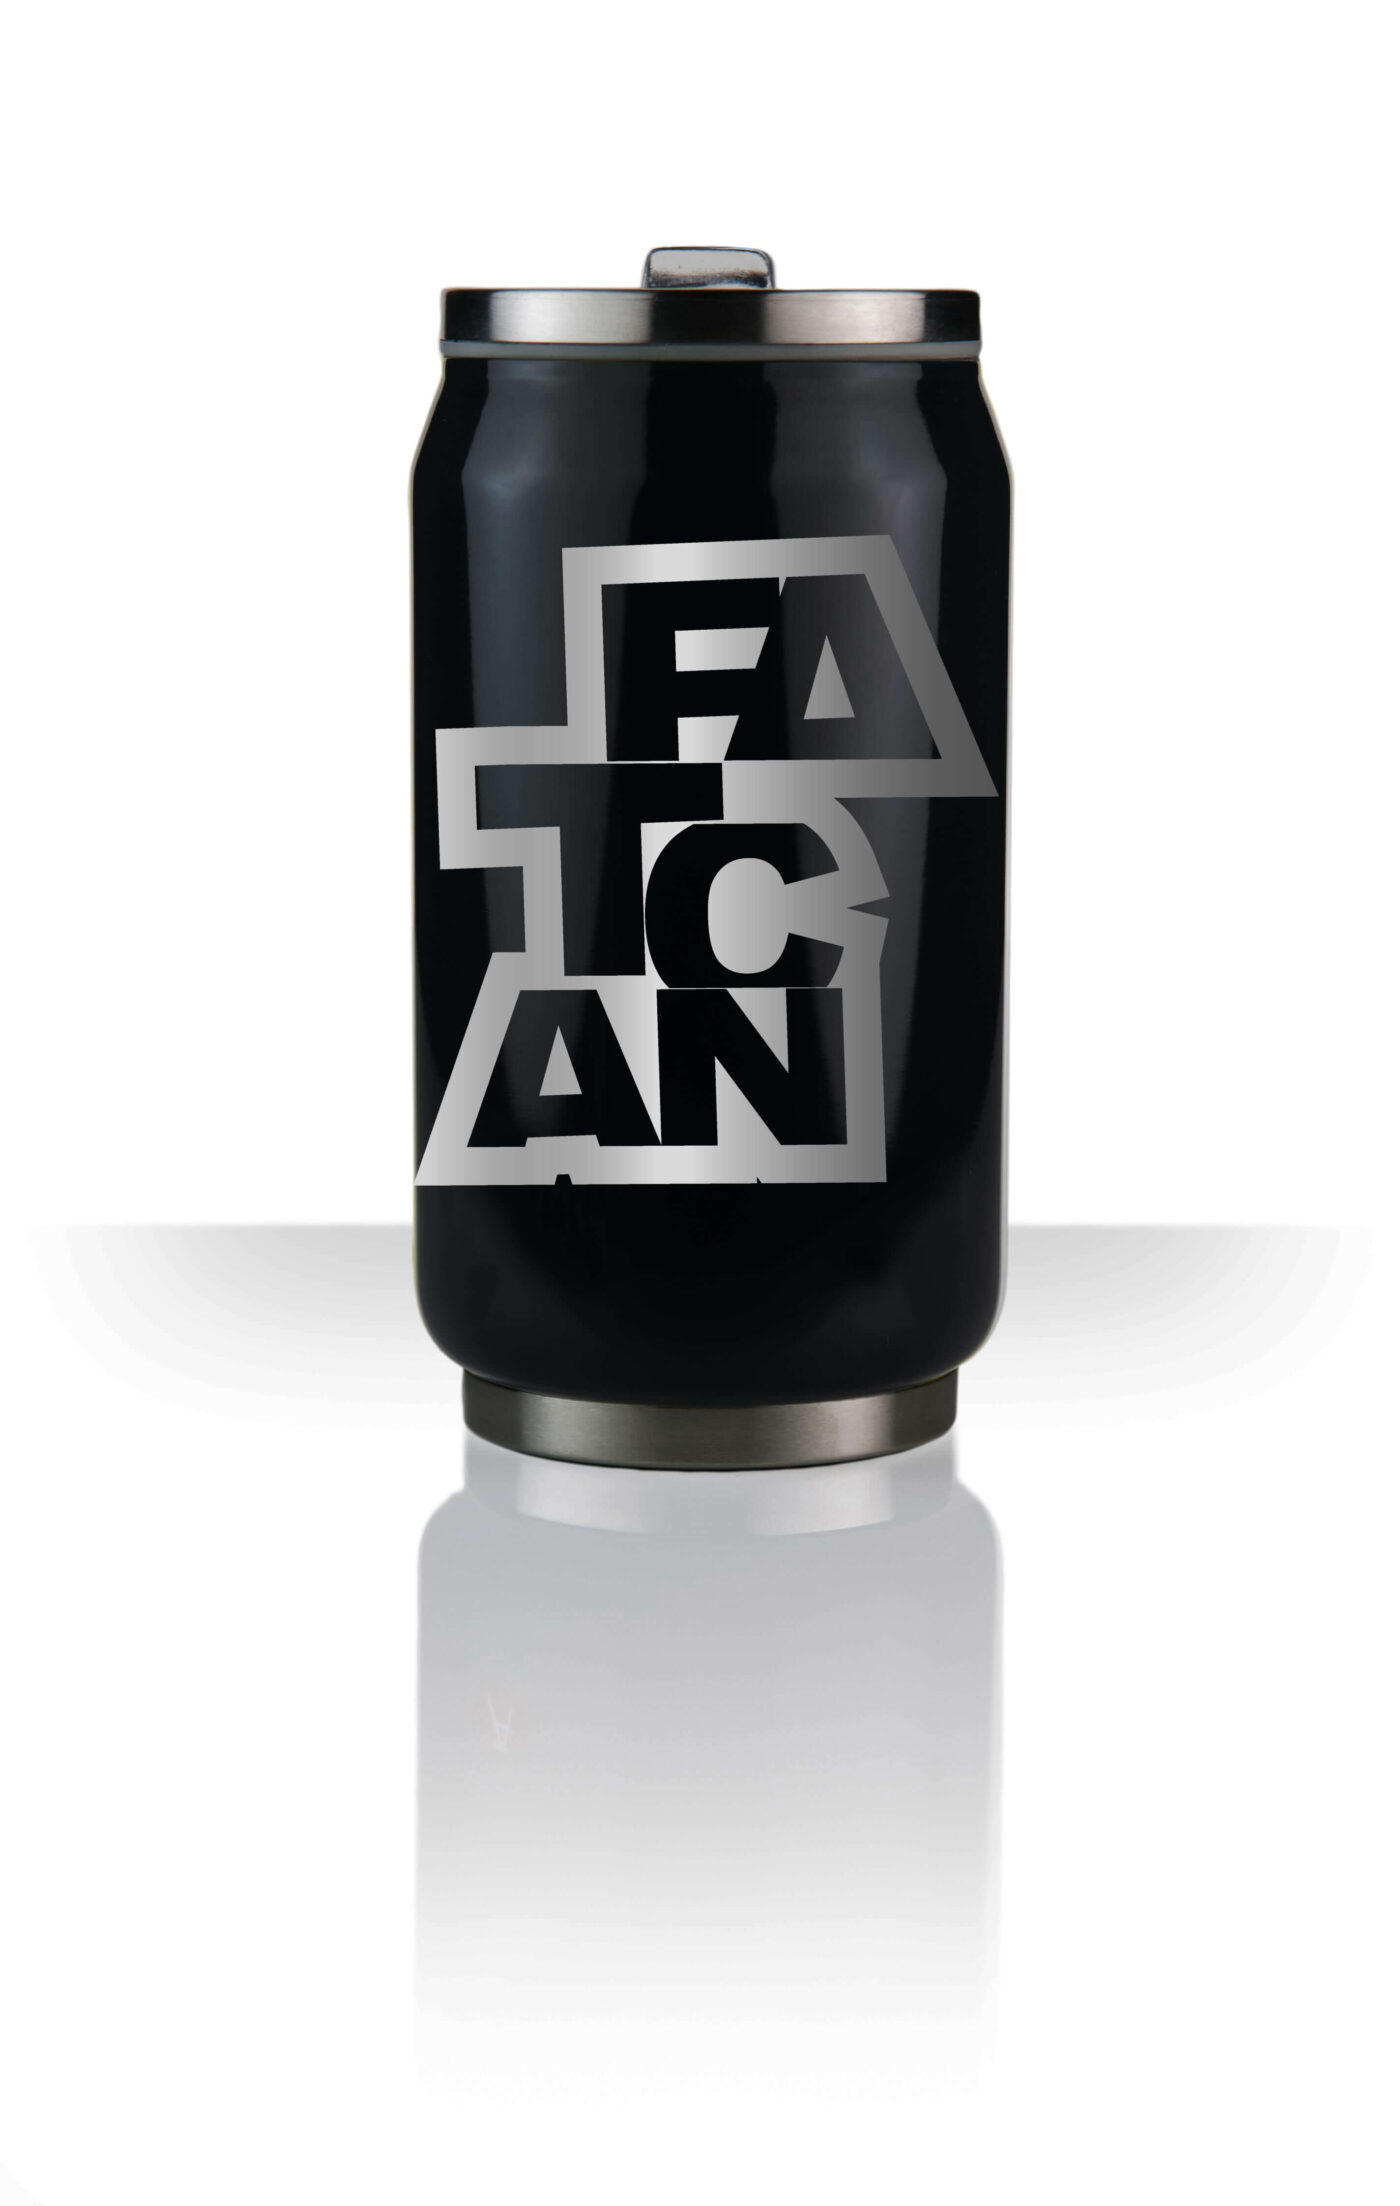 FATCAN_blackcurrant_025